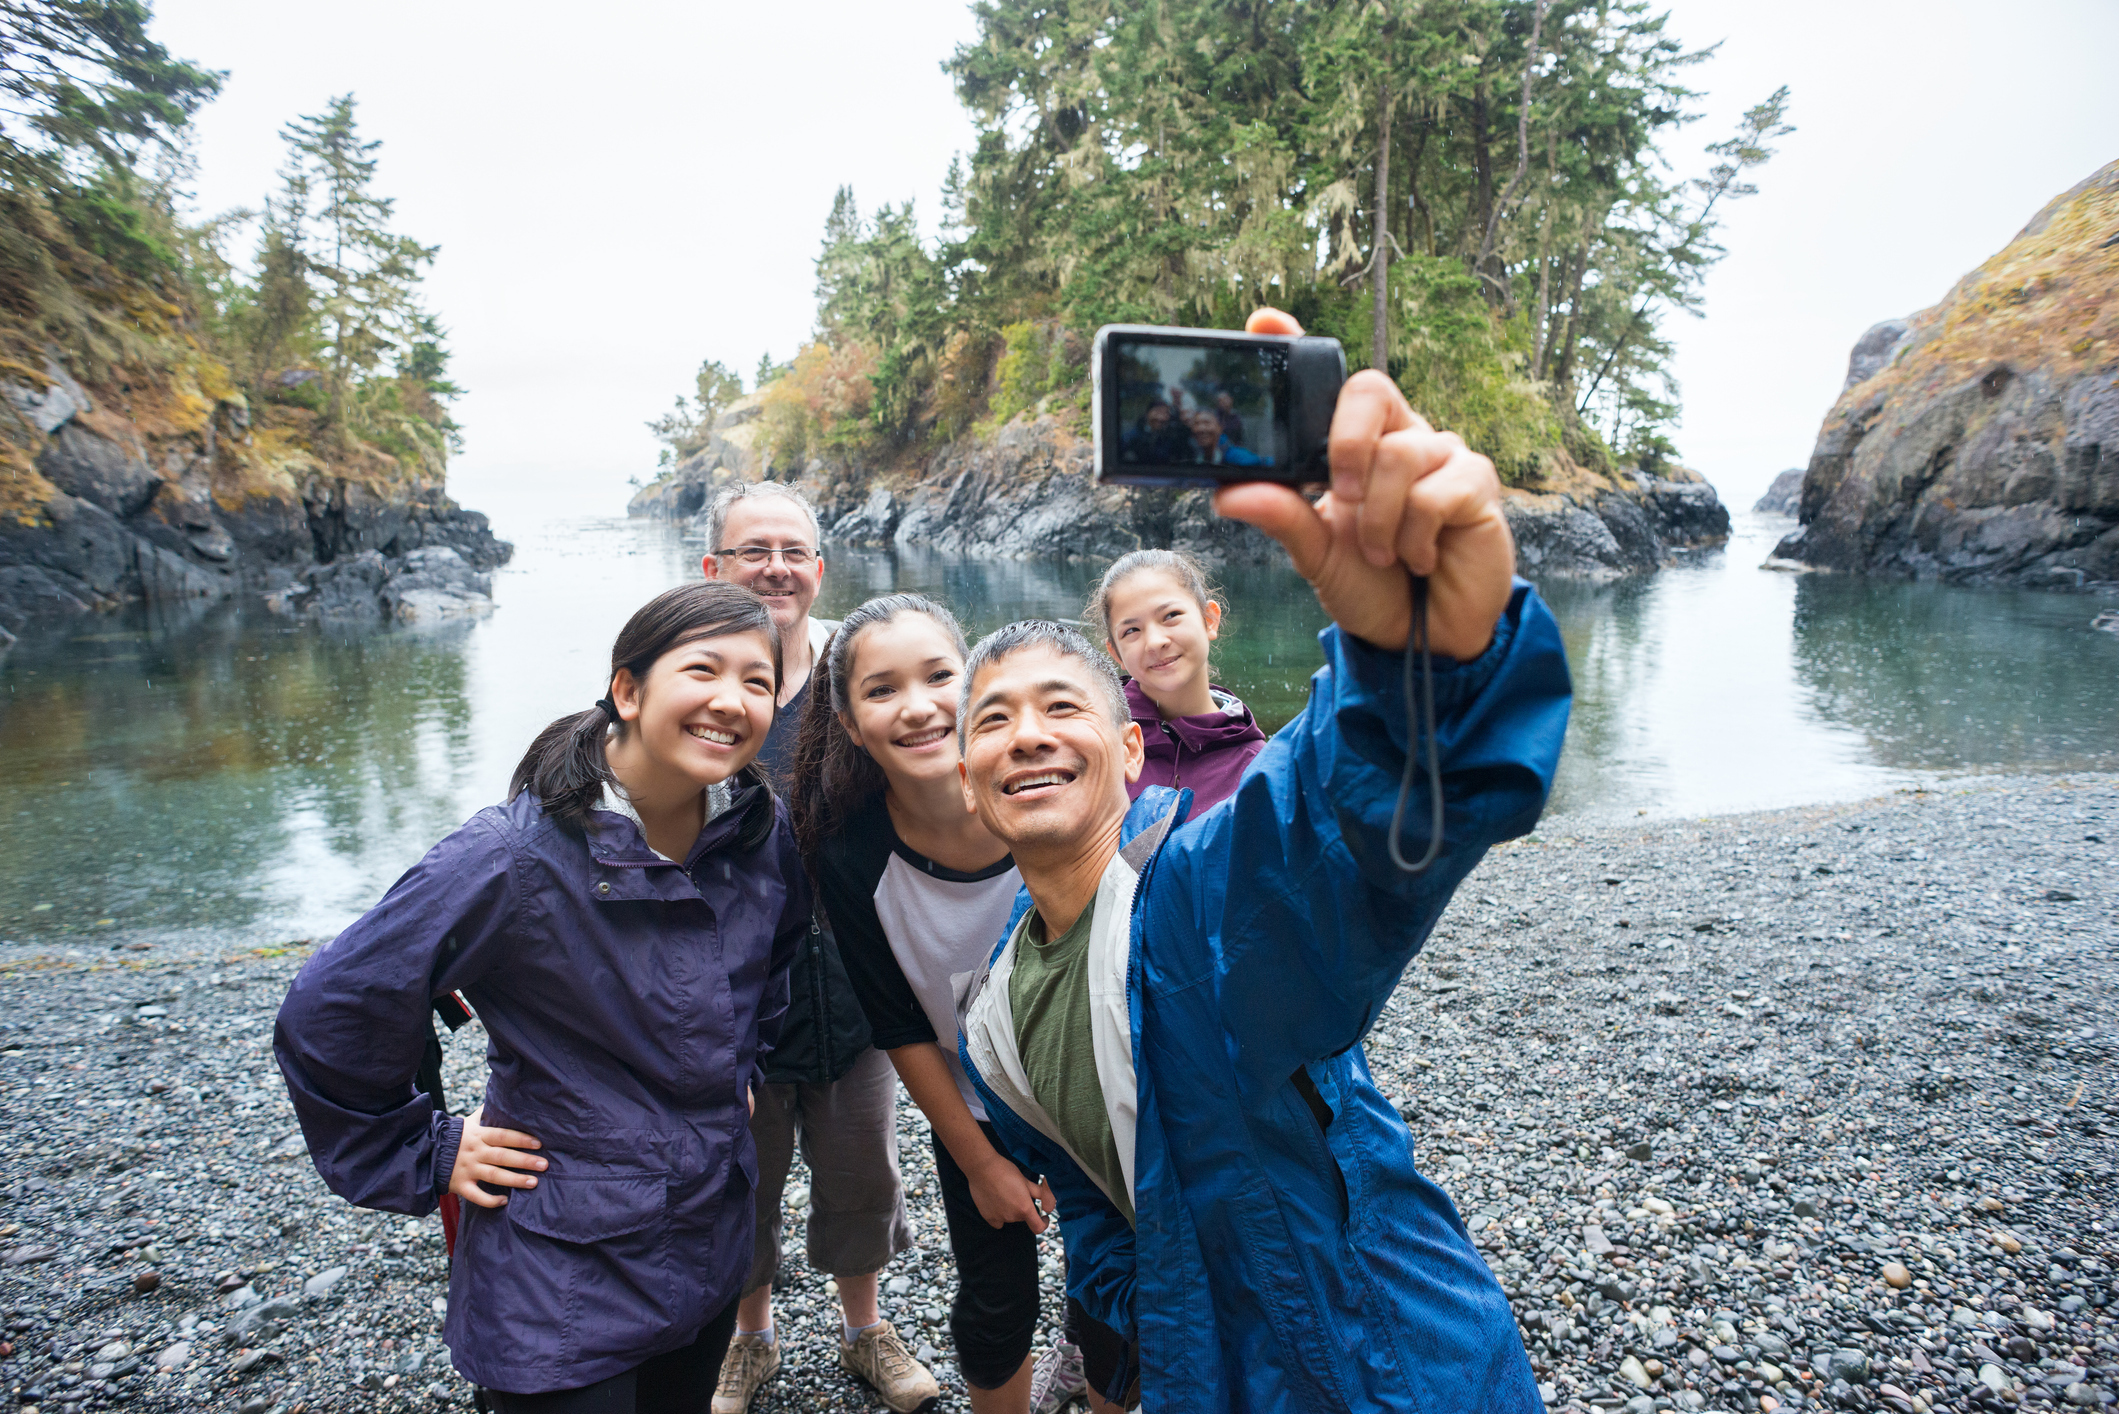 BEYOND LOCAL: How to plan a family trip that works for every generation